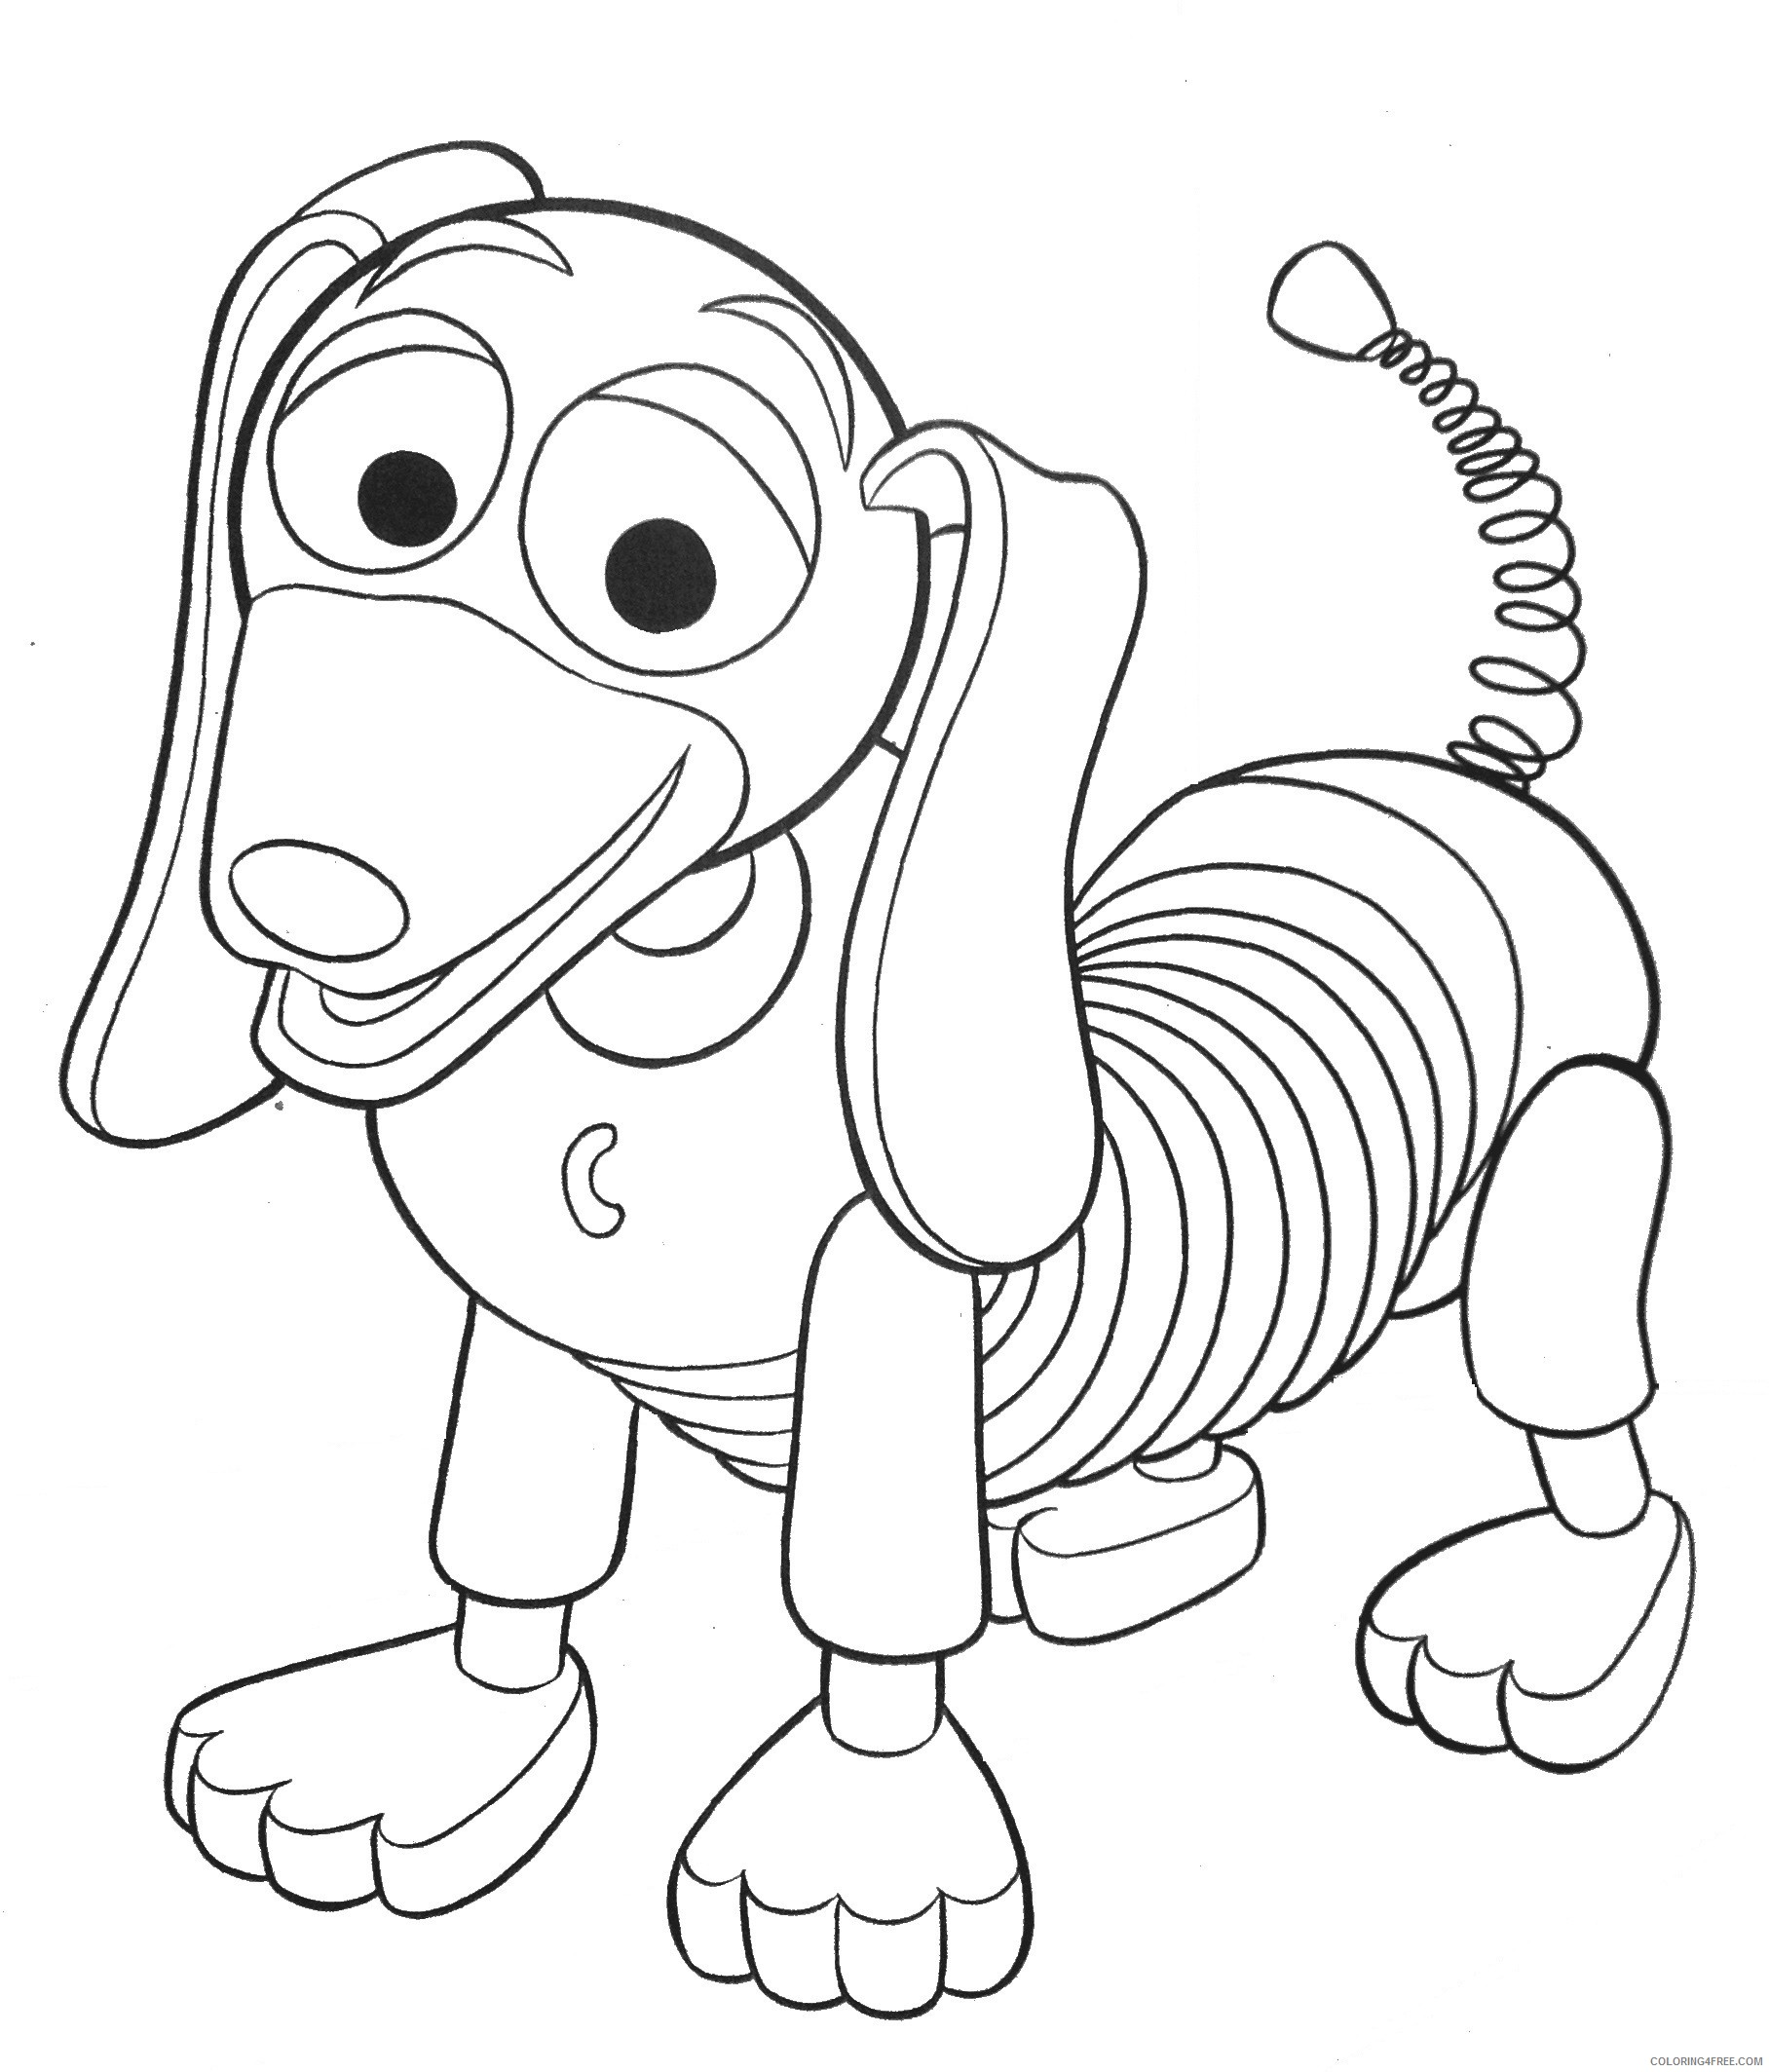 toy story coloring pages slinky dog Coloring18free   Coloring18Free.com